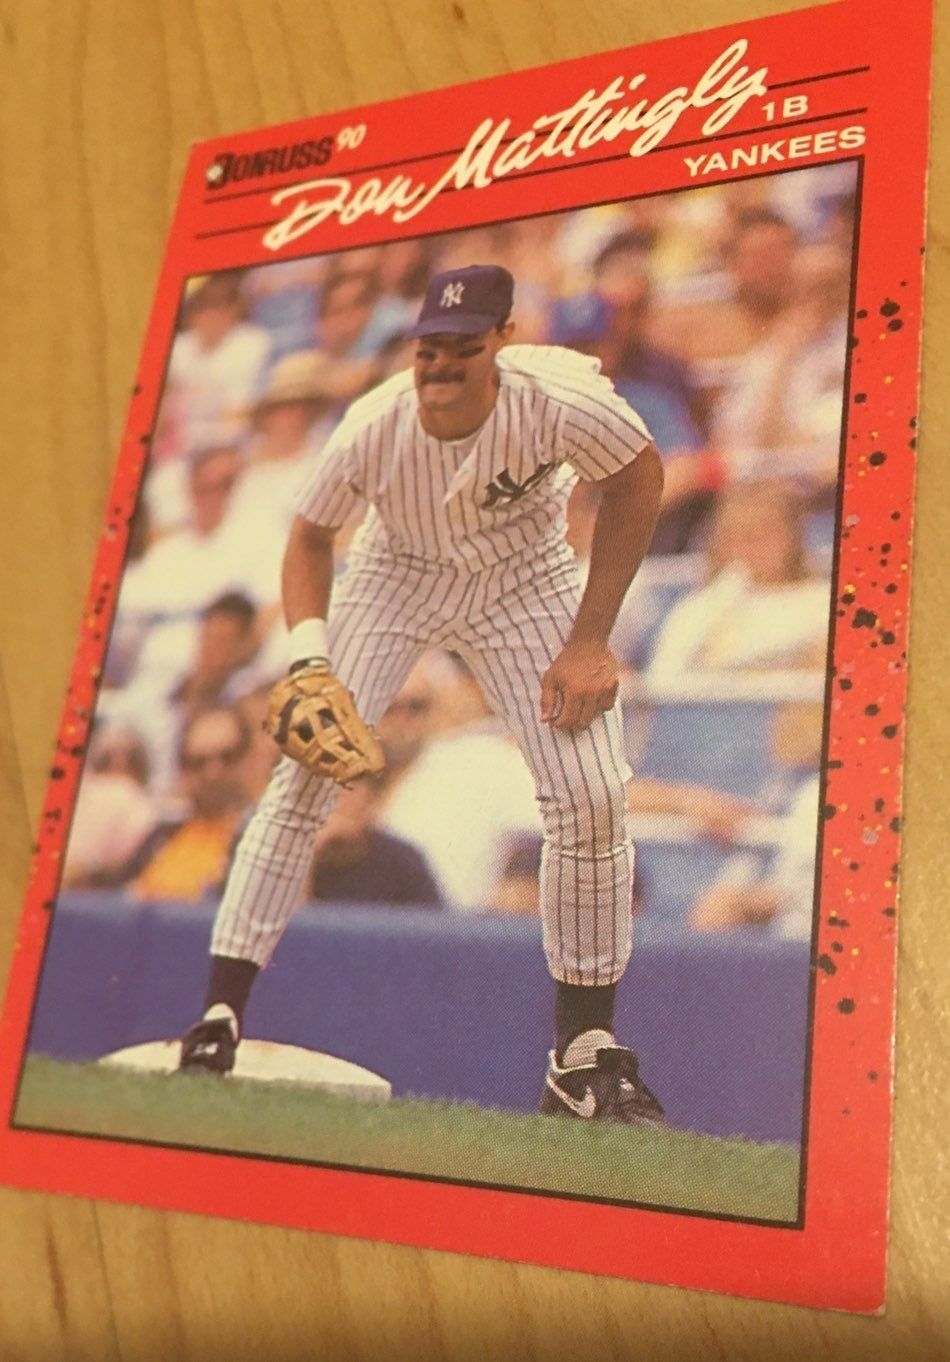 This card is a must have for any baseball collector. Card